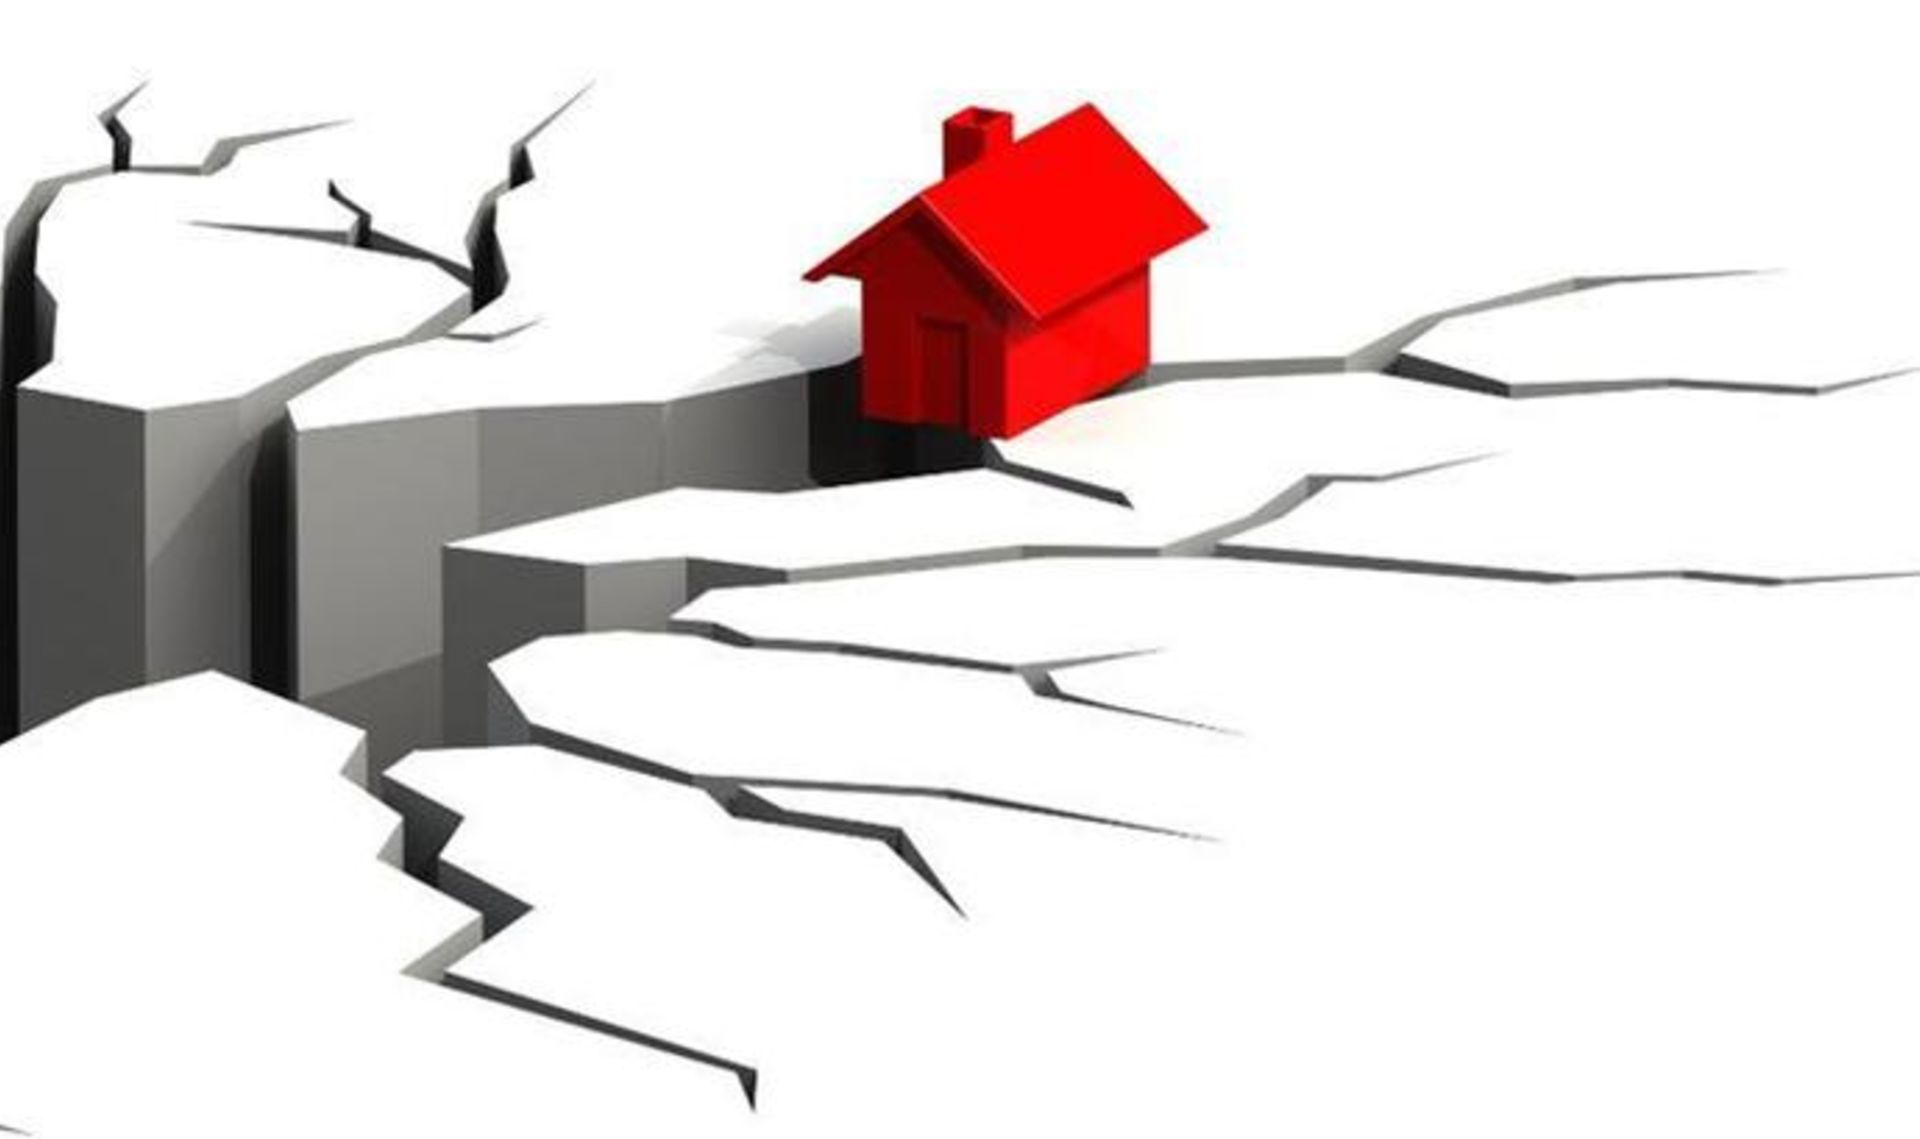 What if the divorcing borrower does not currently live in the property?